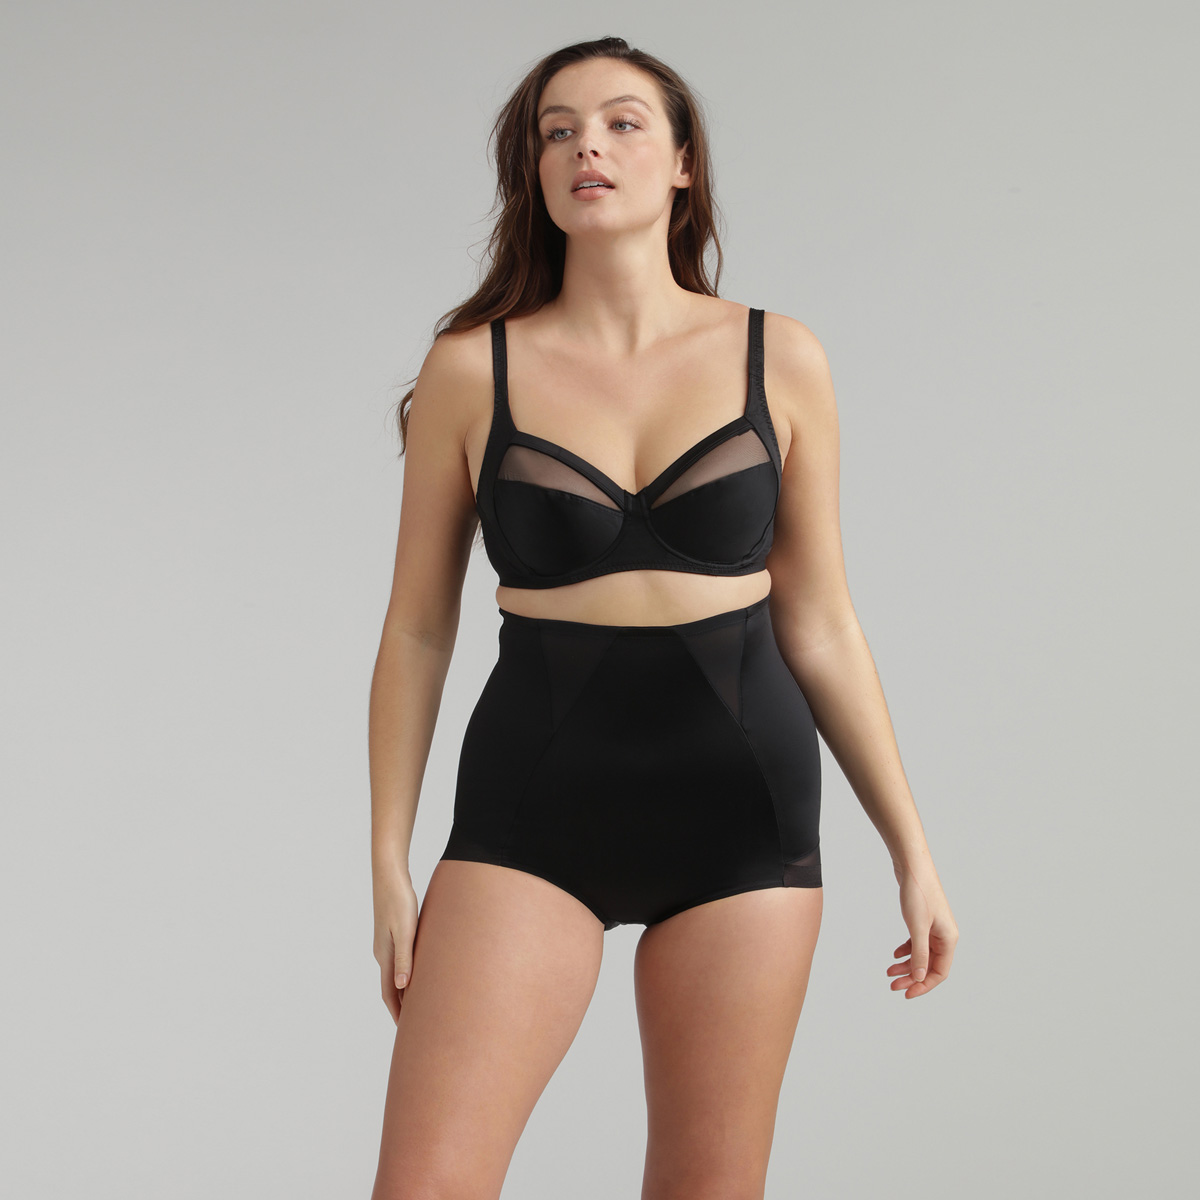 Gaine serre-taille noire - Perfect Silhouette, , PLAYTEX